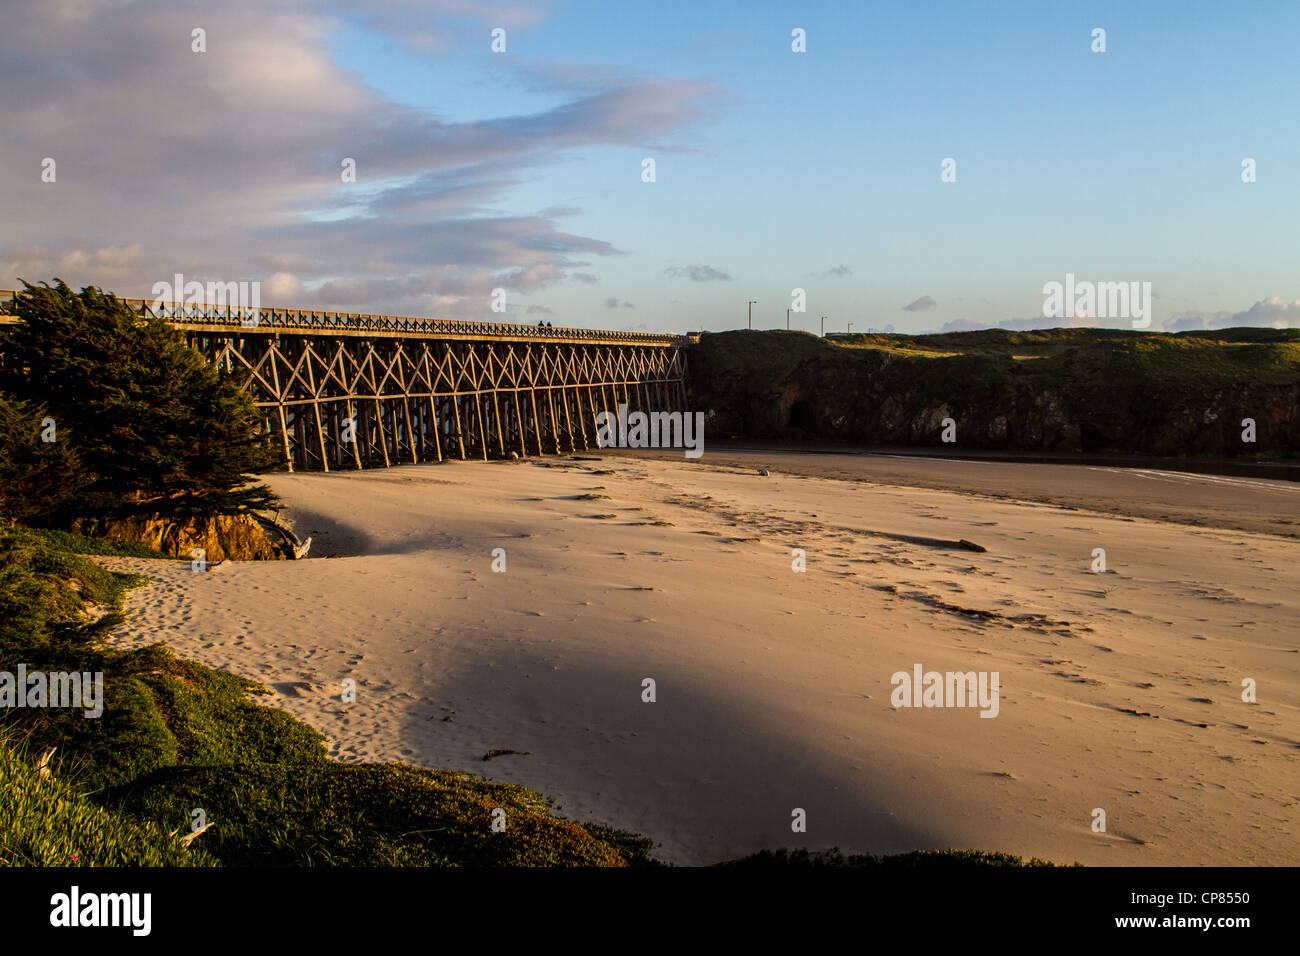 The Pudding Creek bridge in Fort Bragg California part of a Ten mile trail system in Fort Bragg California - Stock Image